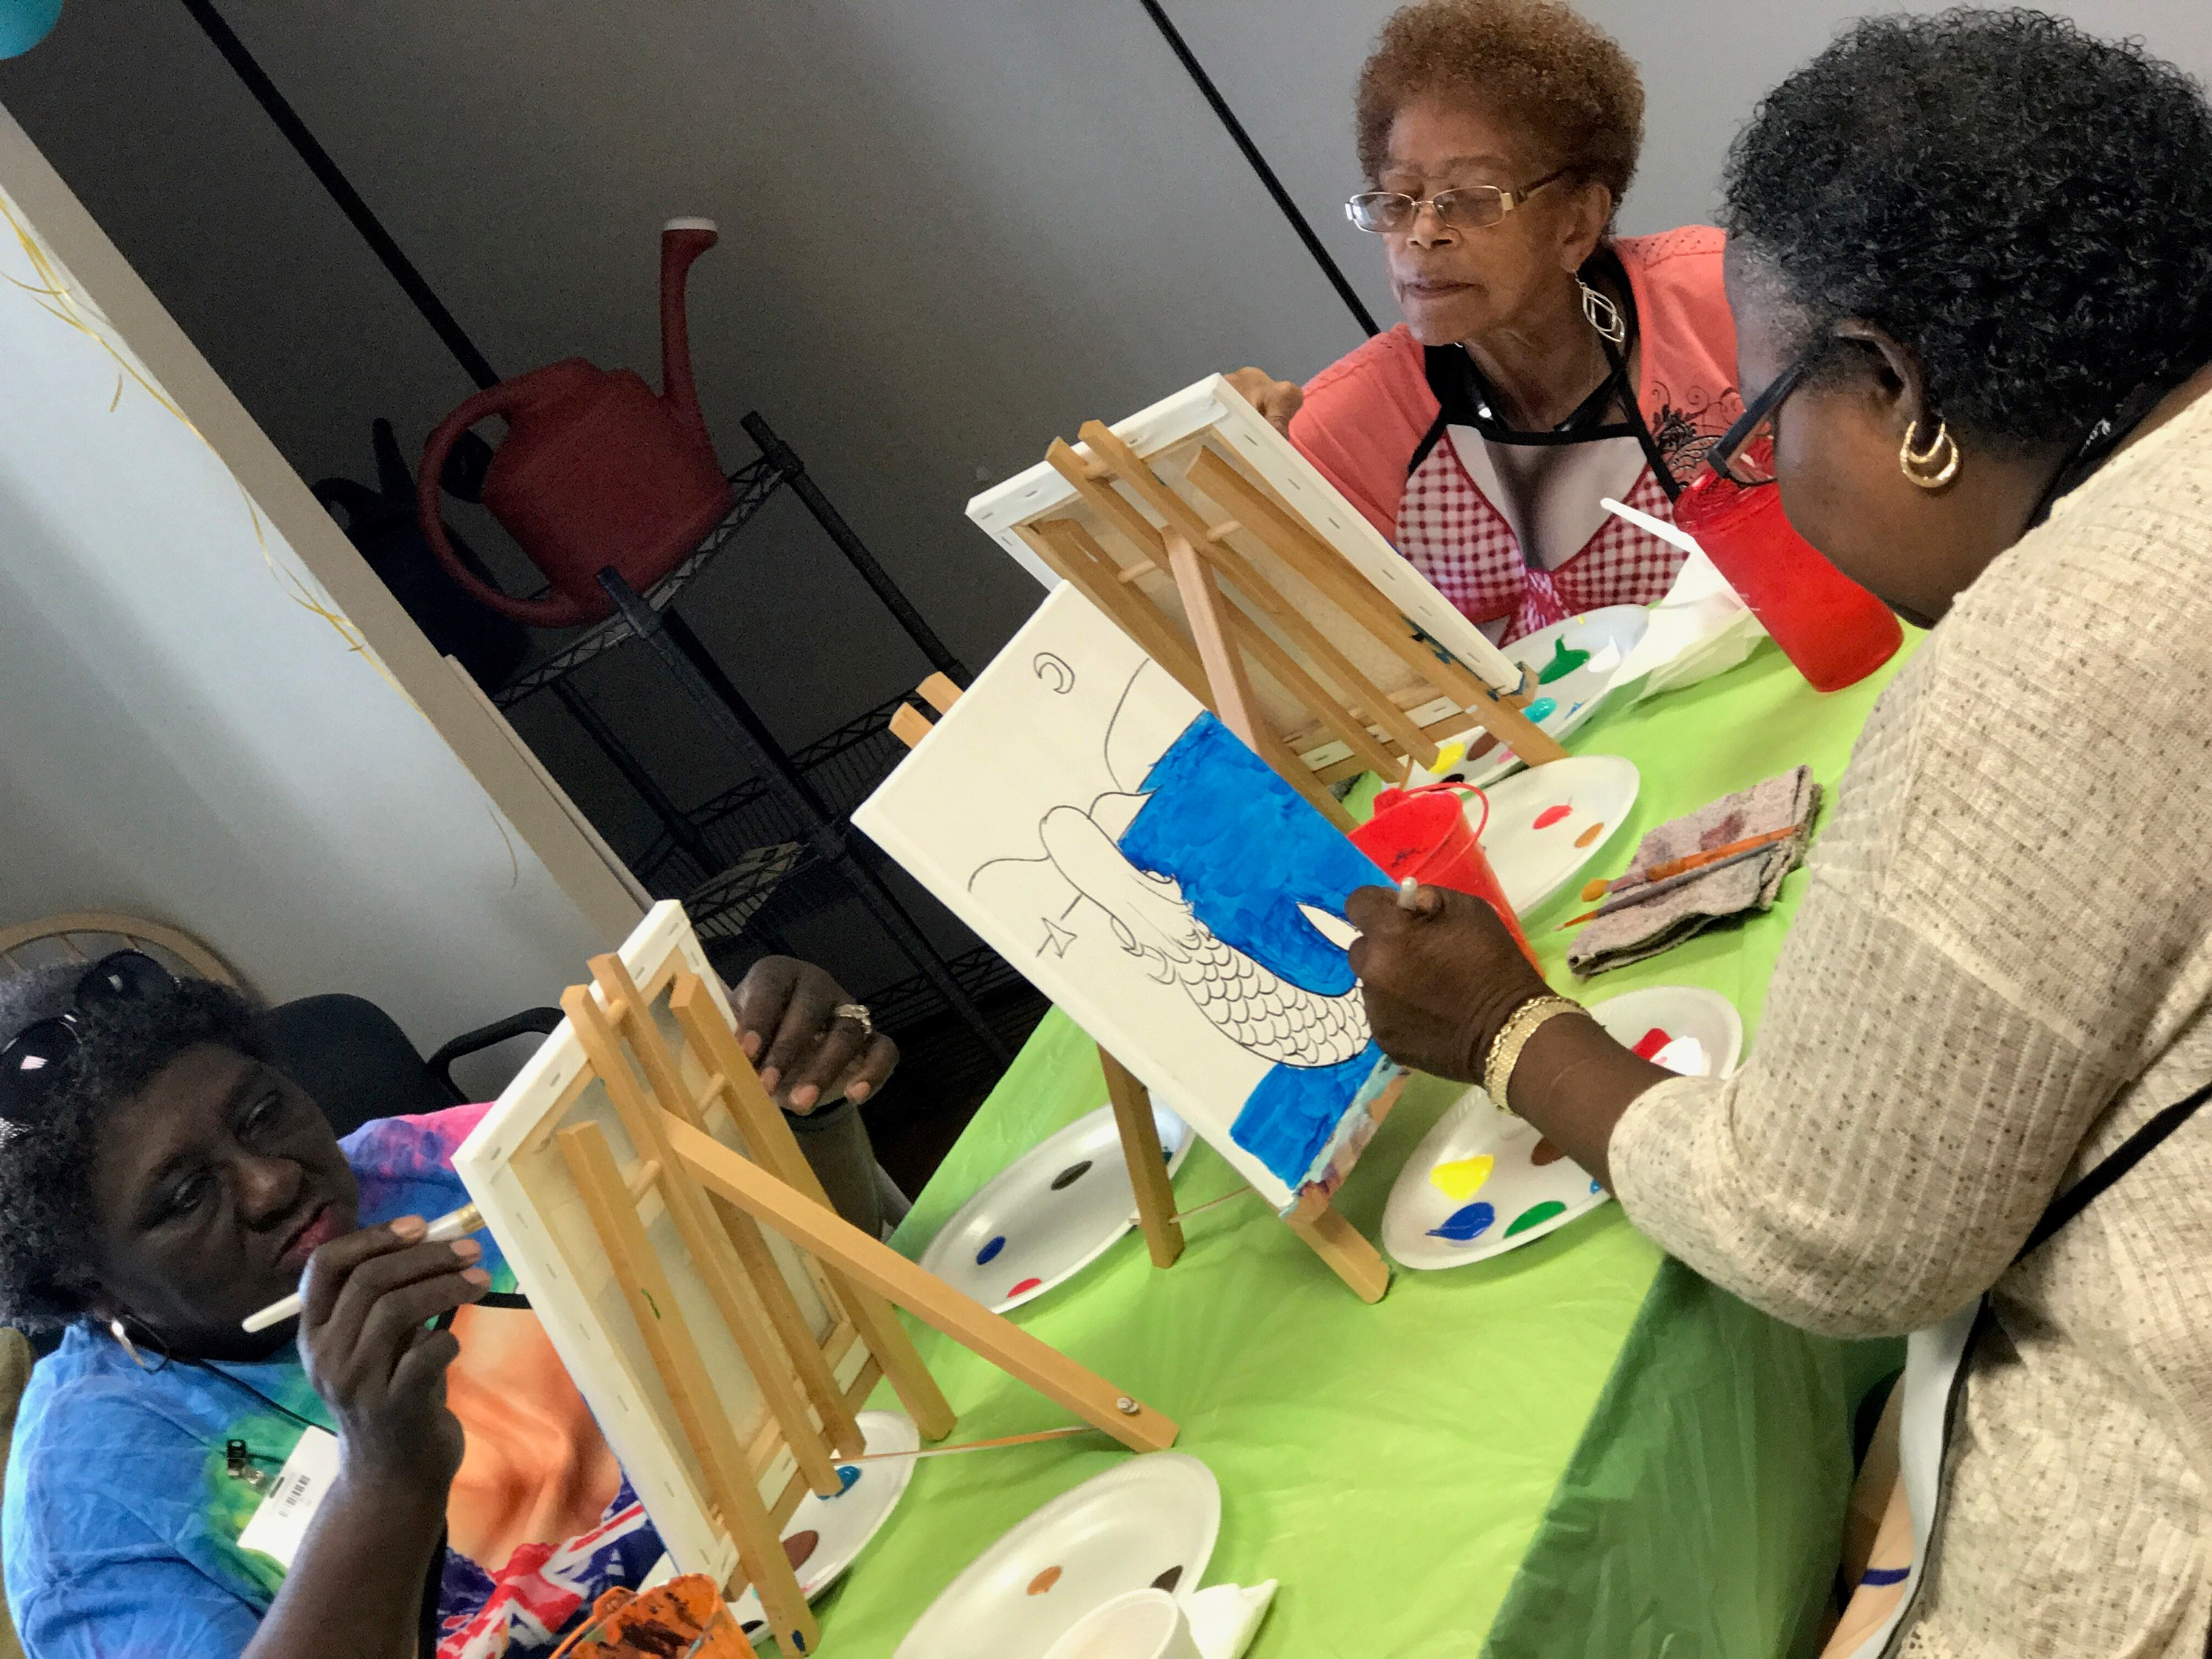 Elderhaus PACE Keeps Seniors Living Safely and Independently in the Community